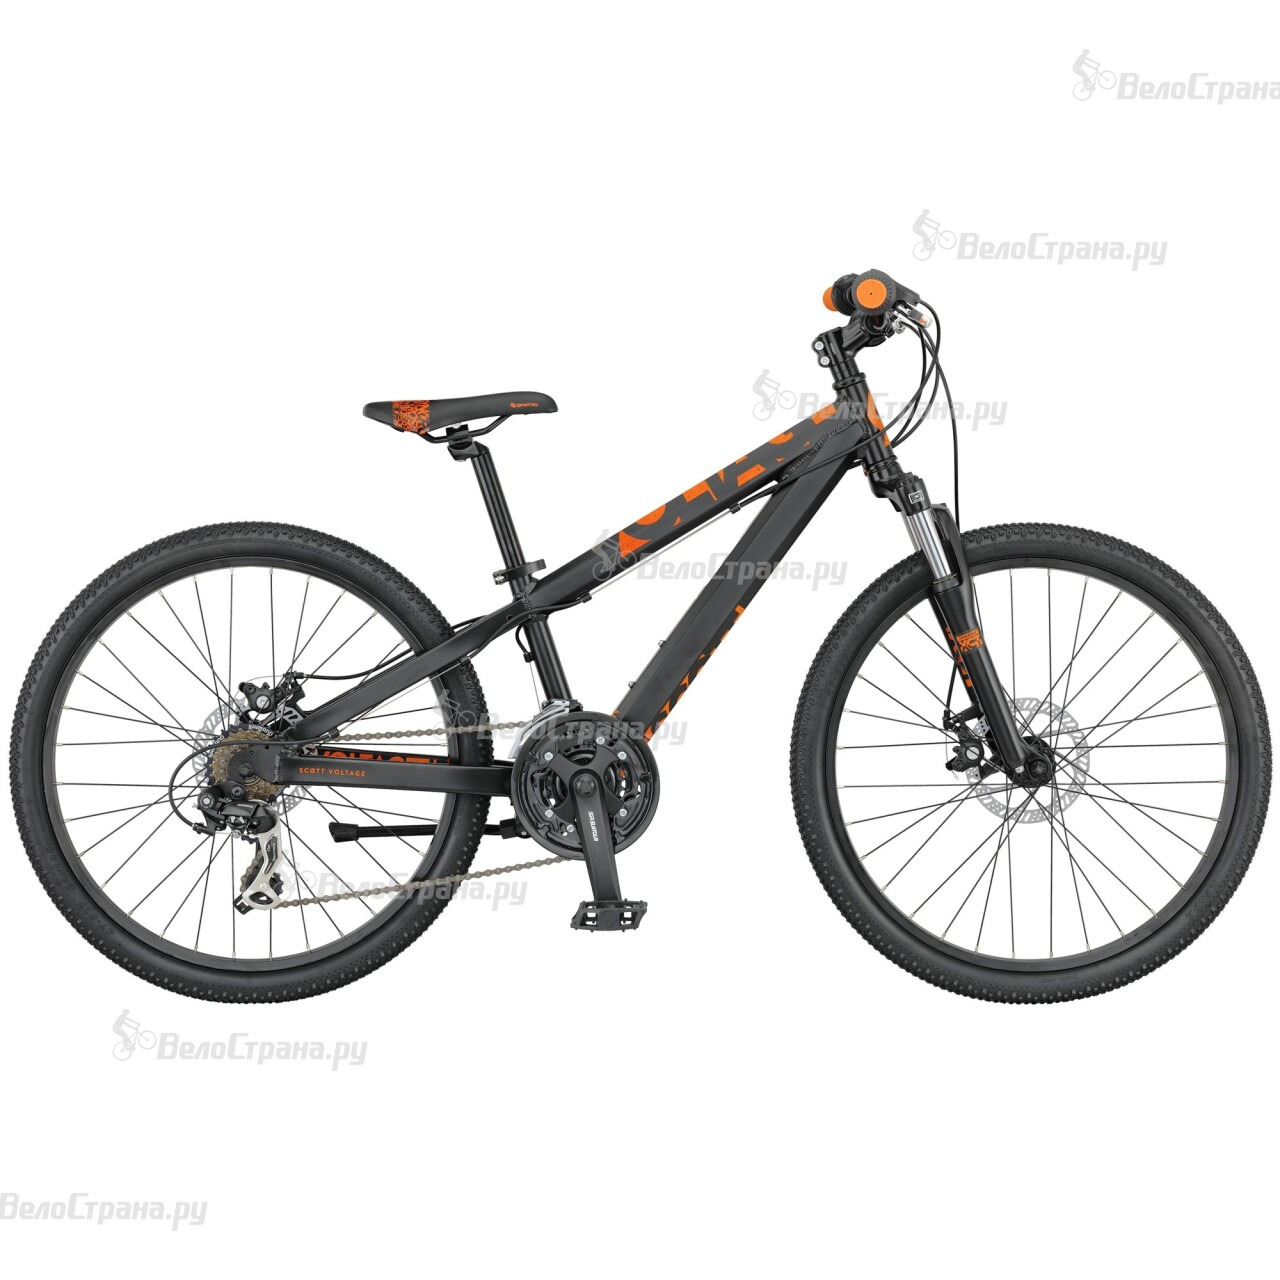 Велосипед Scott Voltage Junior 24 Disc (2016) велосипед scott voltage jr 24 24 2016